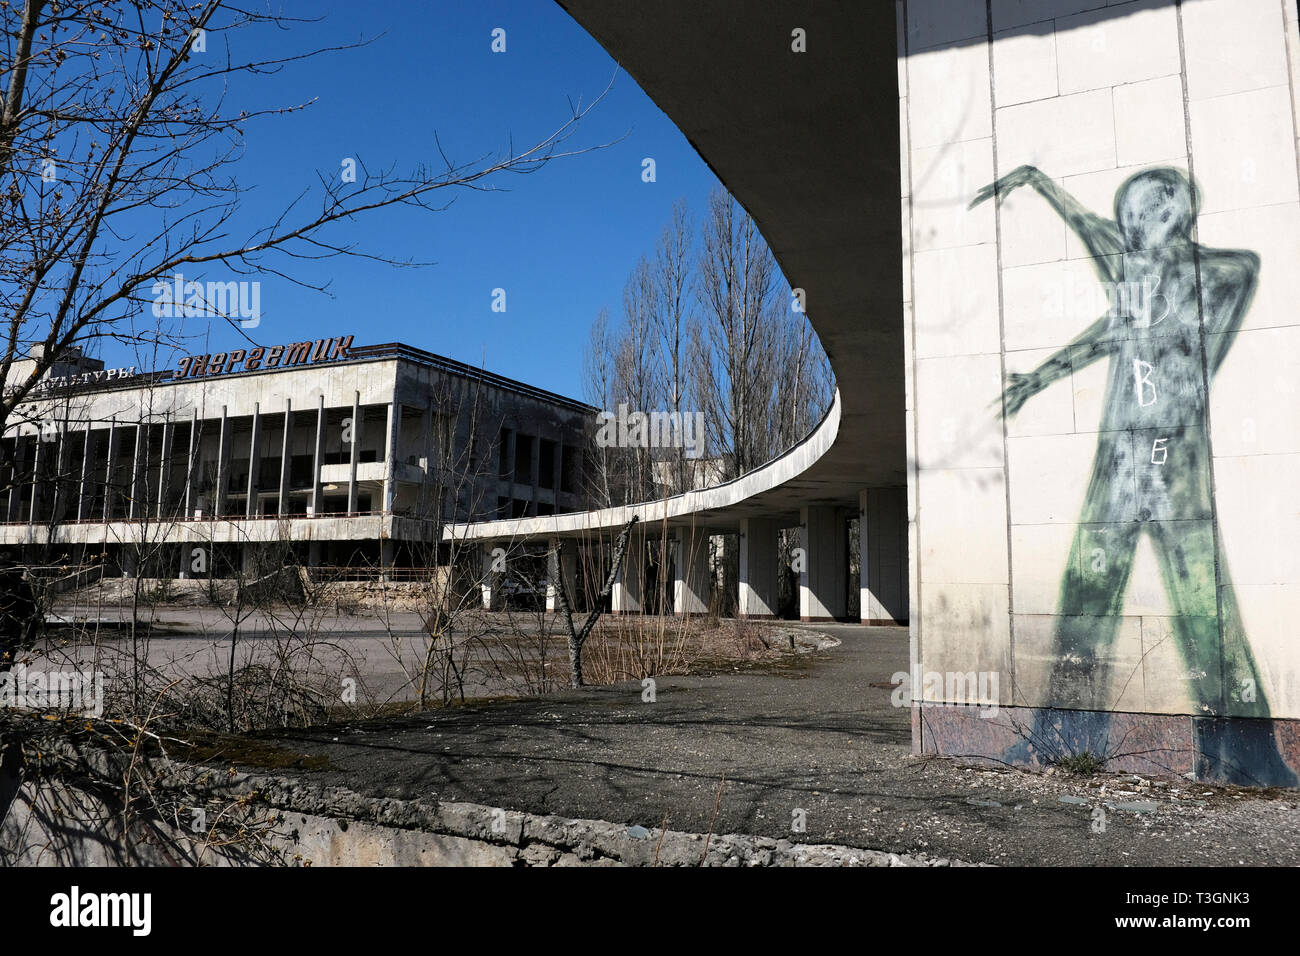 Abandoned buildings in the ghost town of Pripyat inside the exclusion zone of Chernobyl, Ukraine, April 2019 - Stock Image